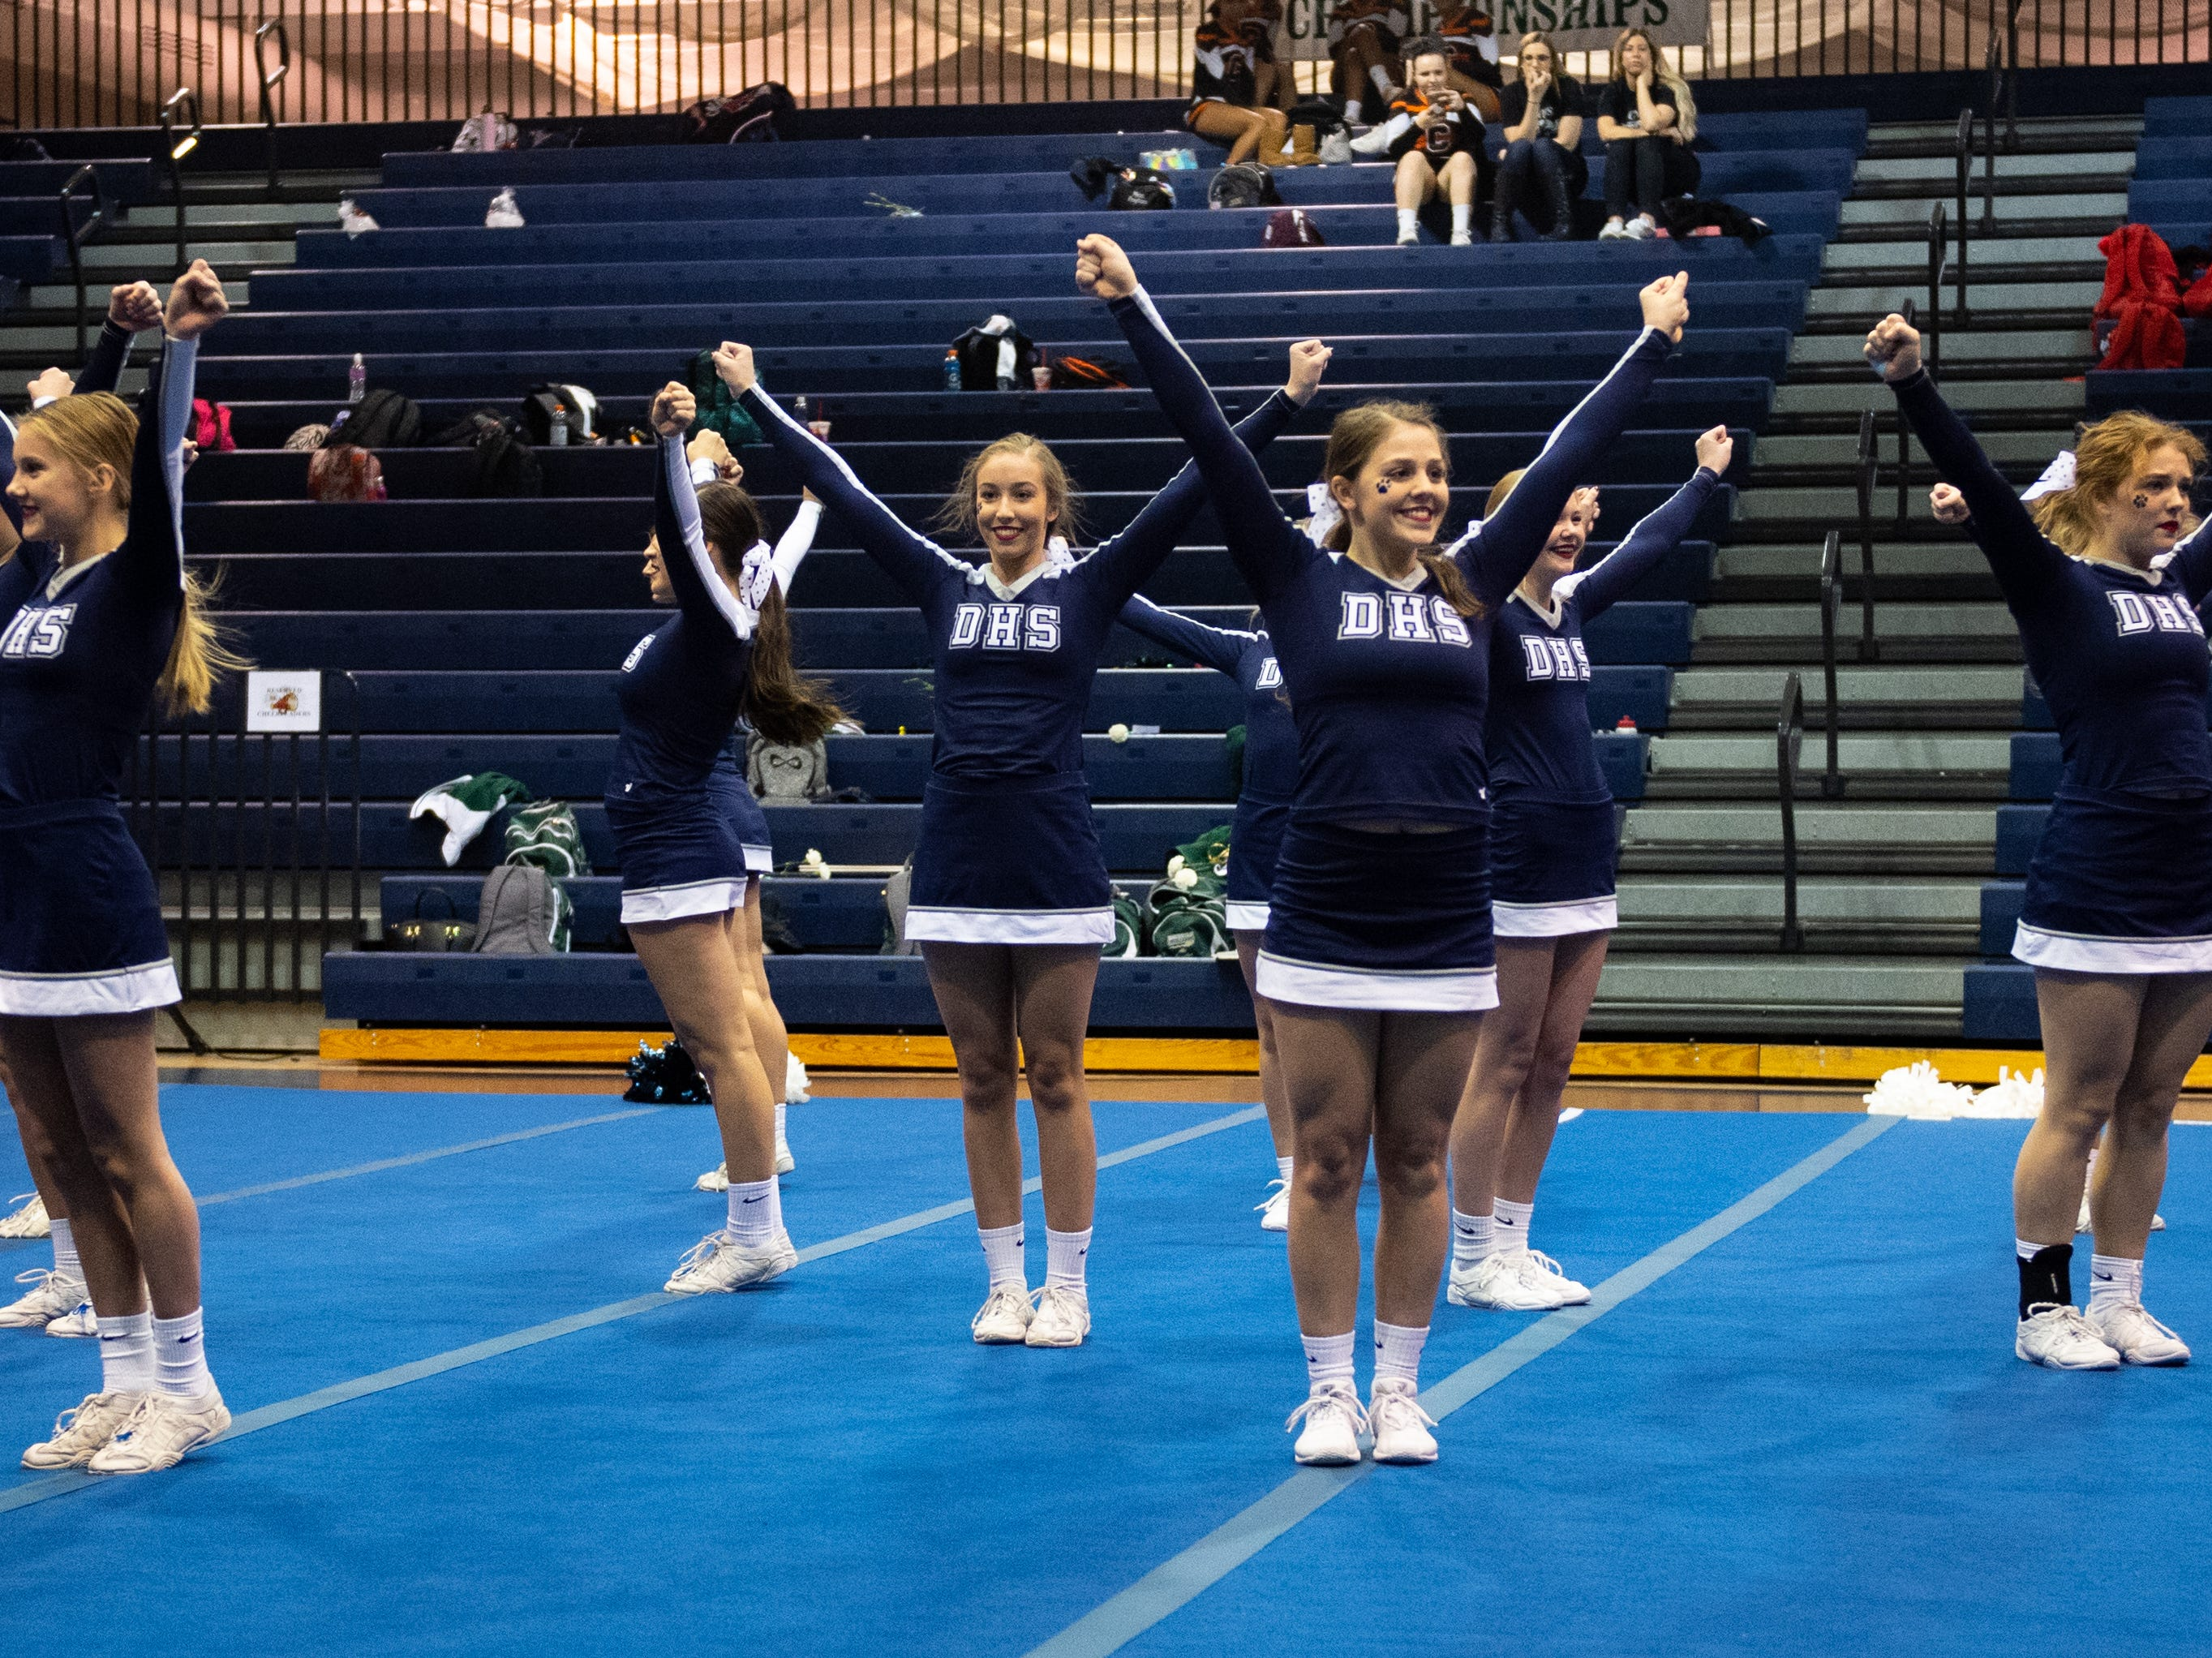 Dallastown performs their routine during the YAIAA competitive spirit championships at Dallastown High School, Saturday, December 1, 2018. Dover won the small-varsity division and Red Lion won the coed division.